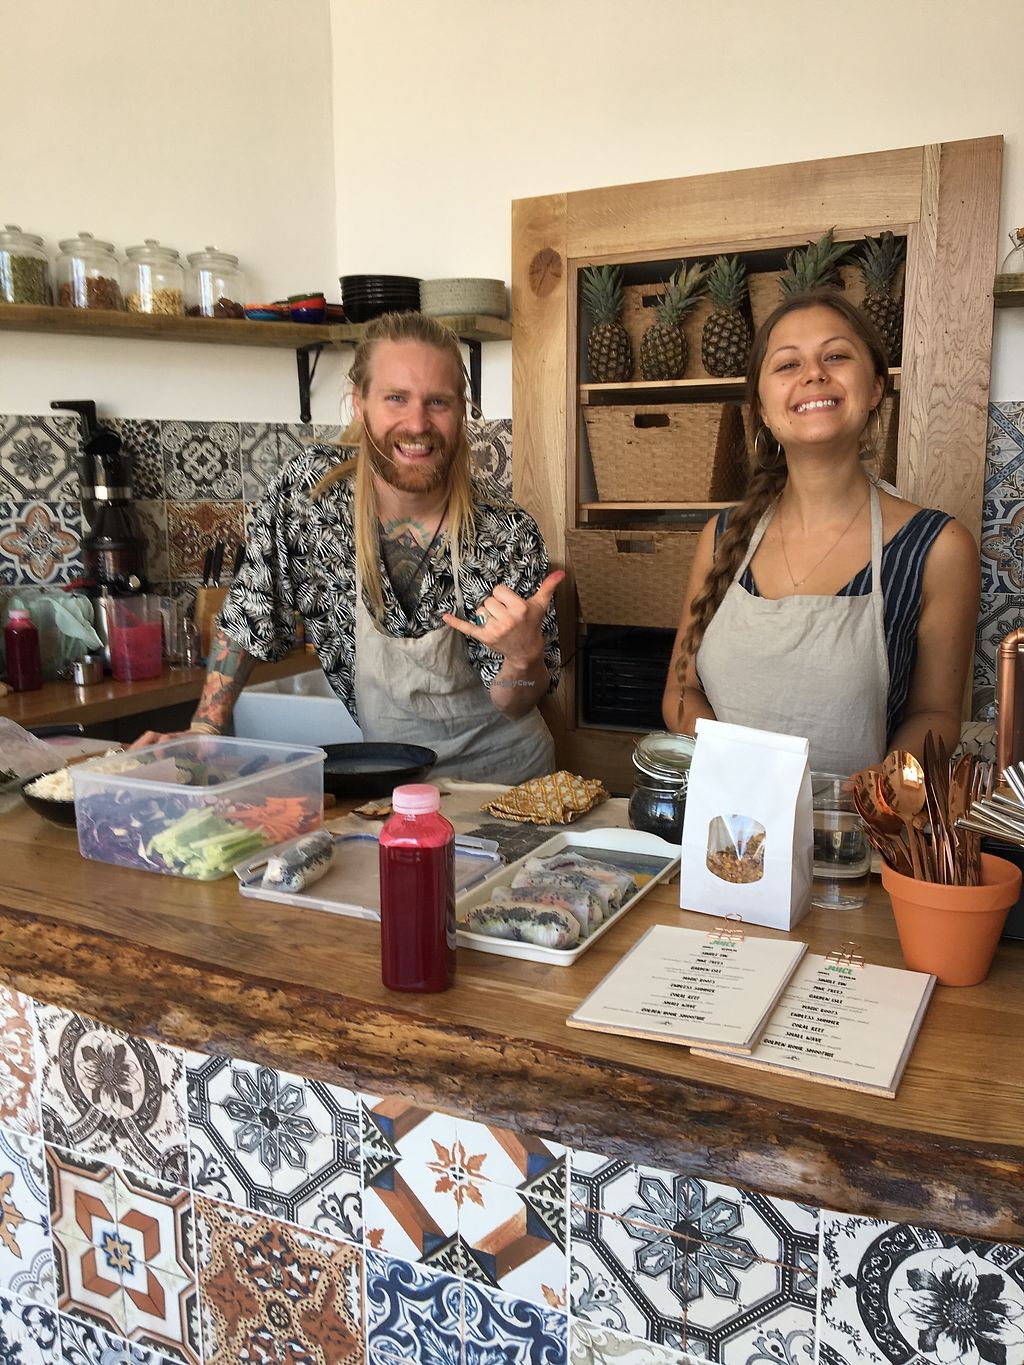 """Photo of Lone Wolves Organics  by <a href=""""/members/profile/JaneMcCabe"""">JaneMcCabe</a> <br/>Met the owners, Lois & Sam, who run Lone Wolves in lovely village of Coggeshall, Essex. So friendly and nothing too much trouble! <br/> July 5, 2017  - <a href='/contact/abuse/image/95415/276950'>Report</a>"""